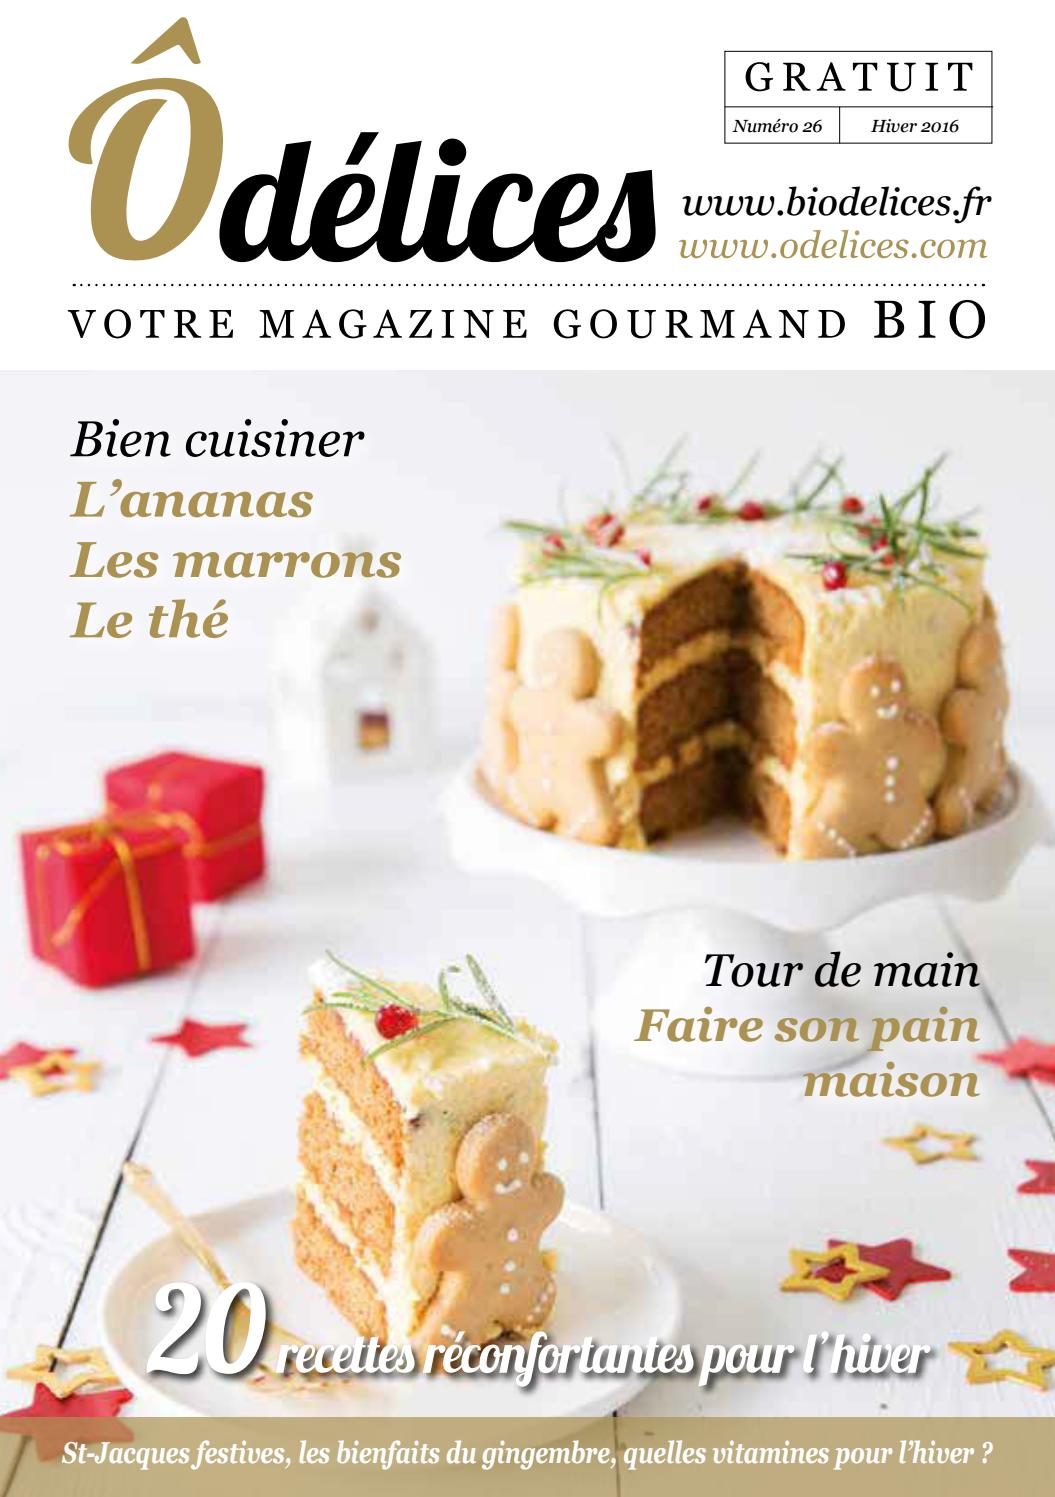 magazine de cuisine odelices n 26 hiver 2016 by marie laure tombini issuu. Black Bedroom Furniture Sets. Home Design Ideas